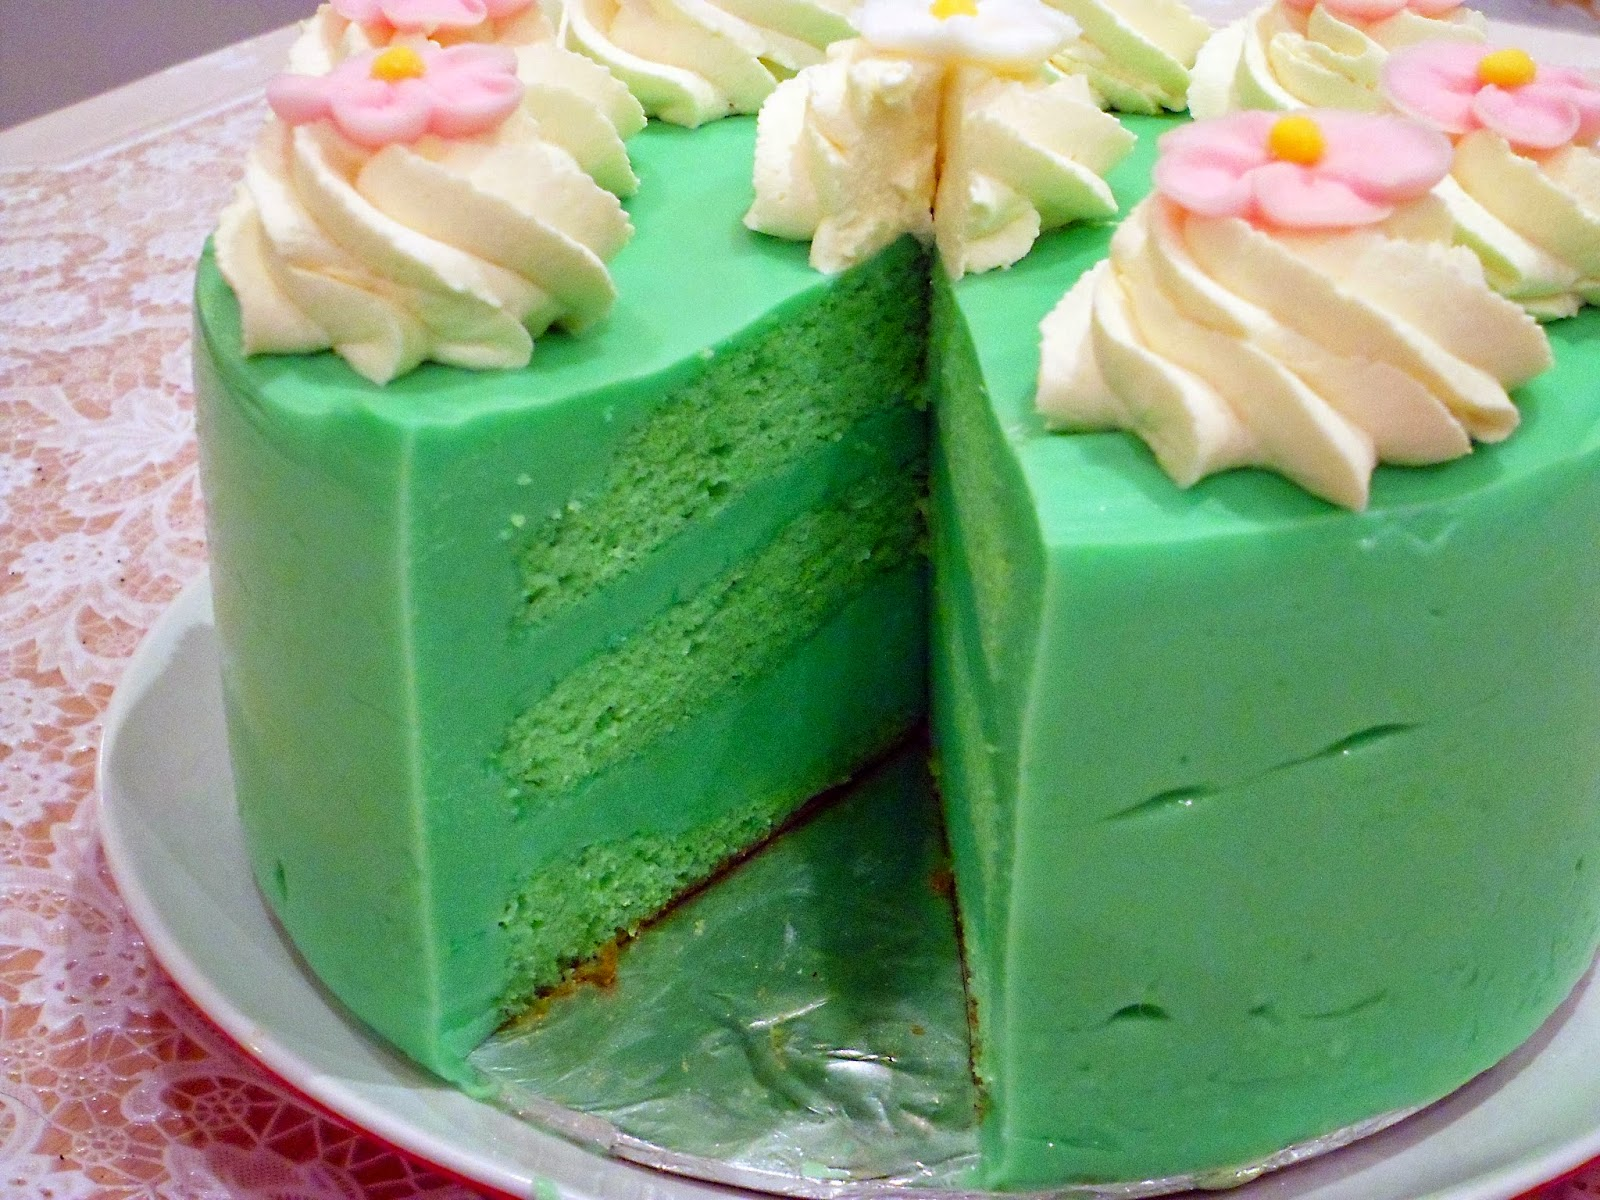 Pandan Cake Jelly Recipe: This Year's Birthday Cake: Pandan Kaya Cake